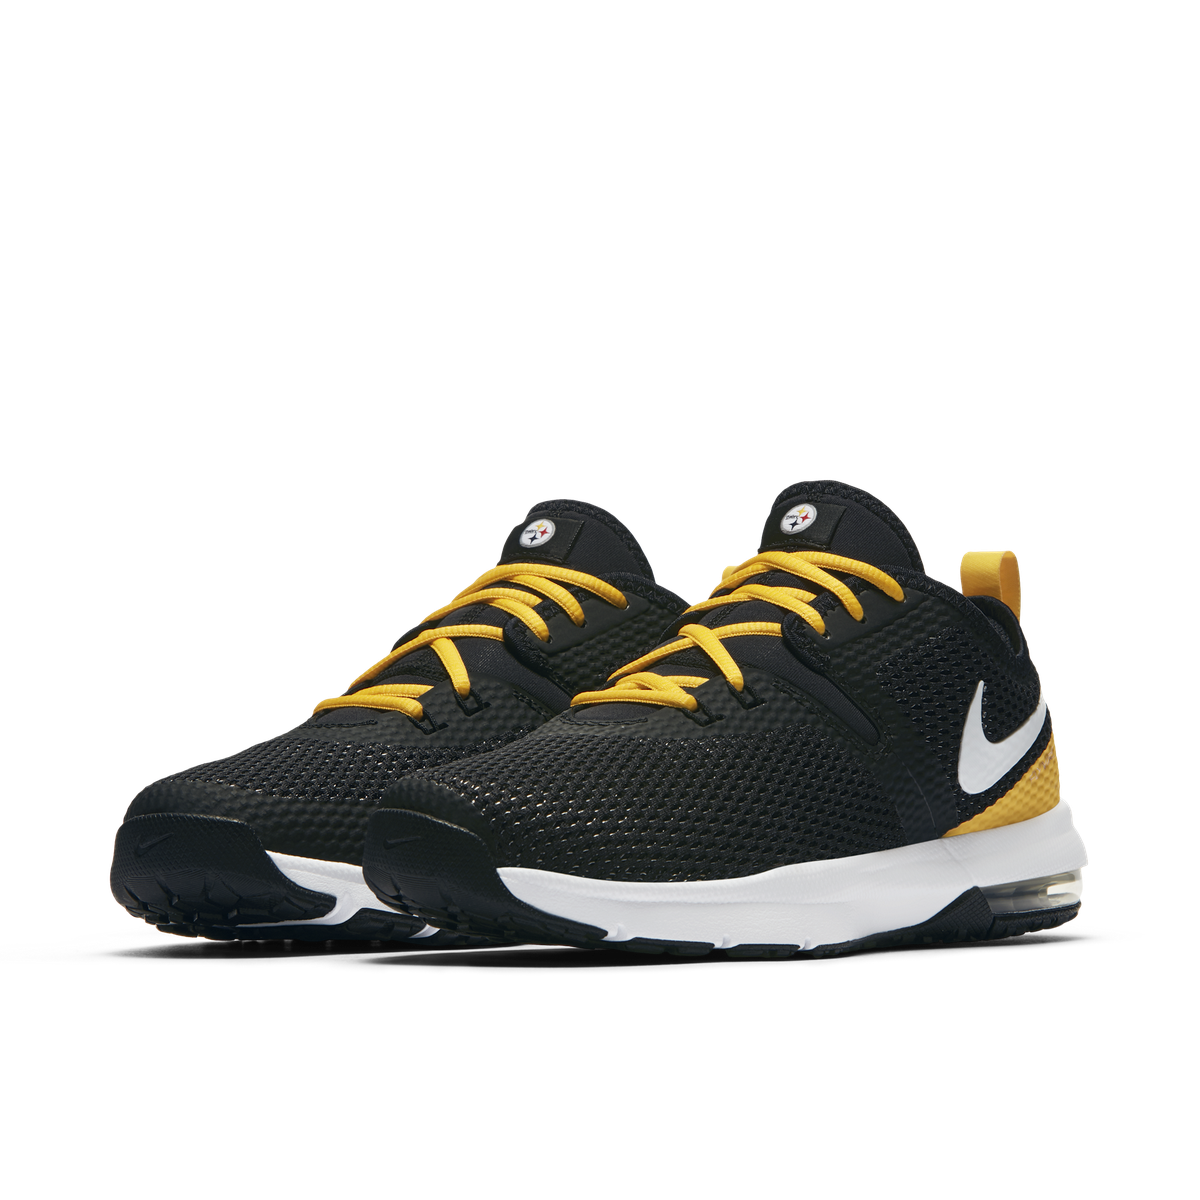 3b6faca05 Nike releases new NFL-themed Air Max Typha 2 shoe collection ...